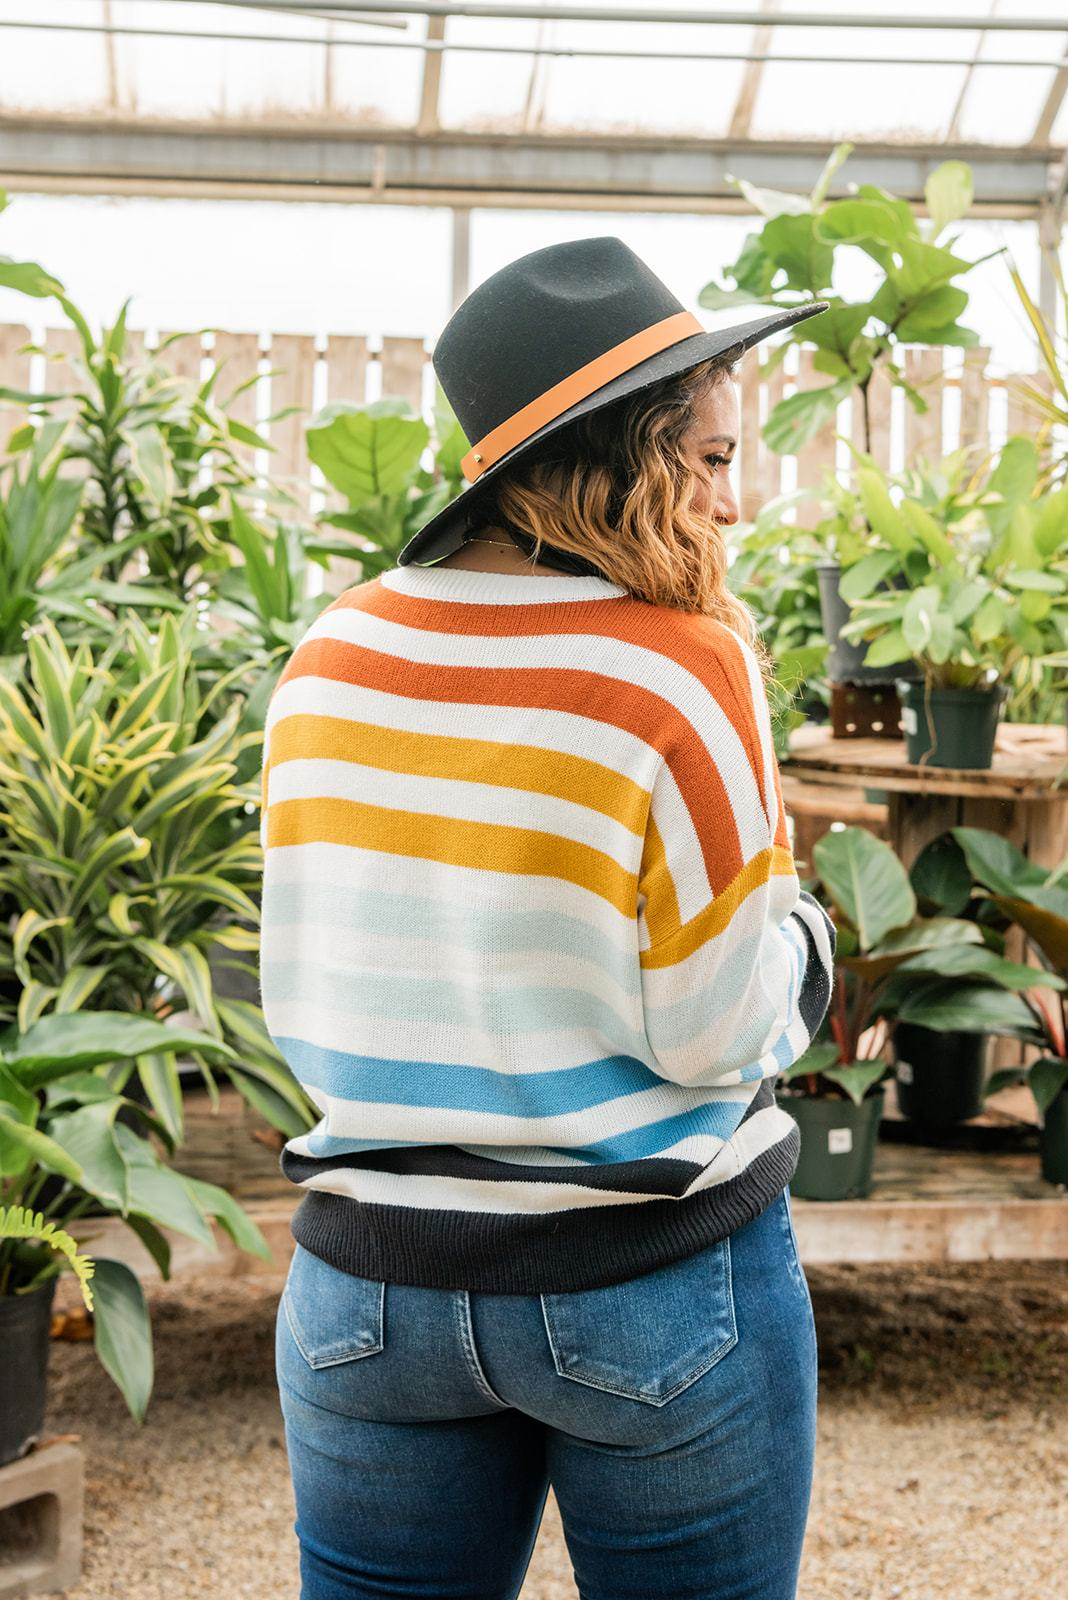 "This sweater features a round neckline, long sleeves, a striped print featuring orange, yellow light blue, teal and black ascending stripes  Fabric:  Approx Measurements:  Small: Bust 44"", Length 23""  Medium: Bust 46"", Length 23""  Large: Bust 48"", Length 24""  XLarge: Bust 50"", Length 25""  Model Corin: 5'5 size 11/12 wearing Large"